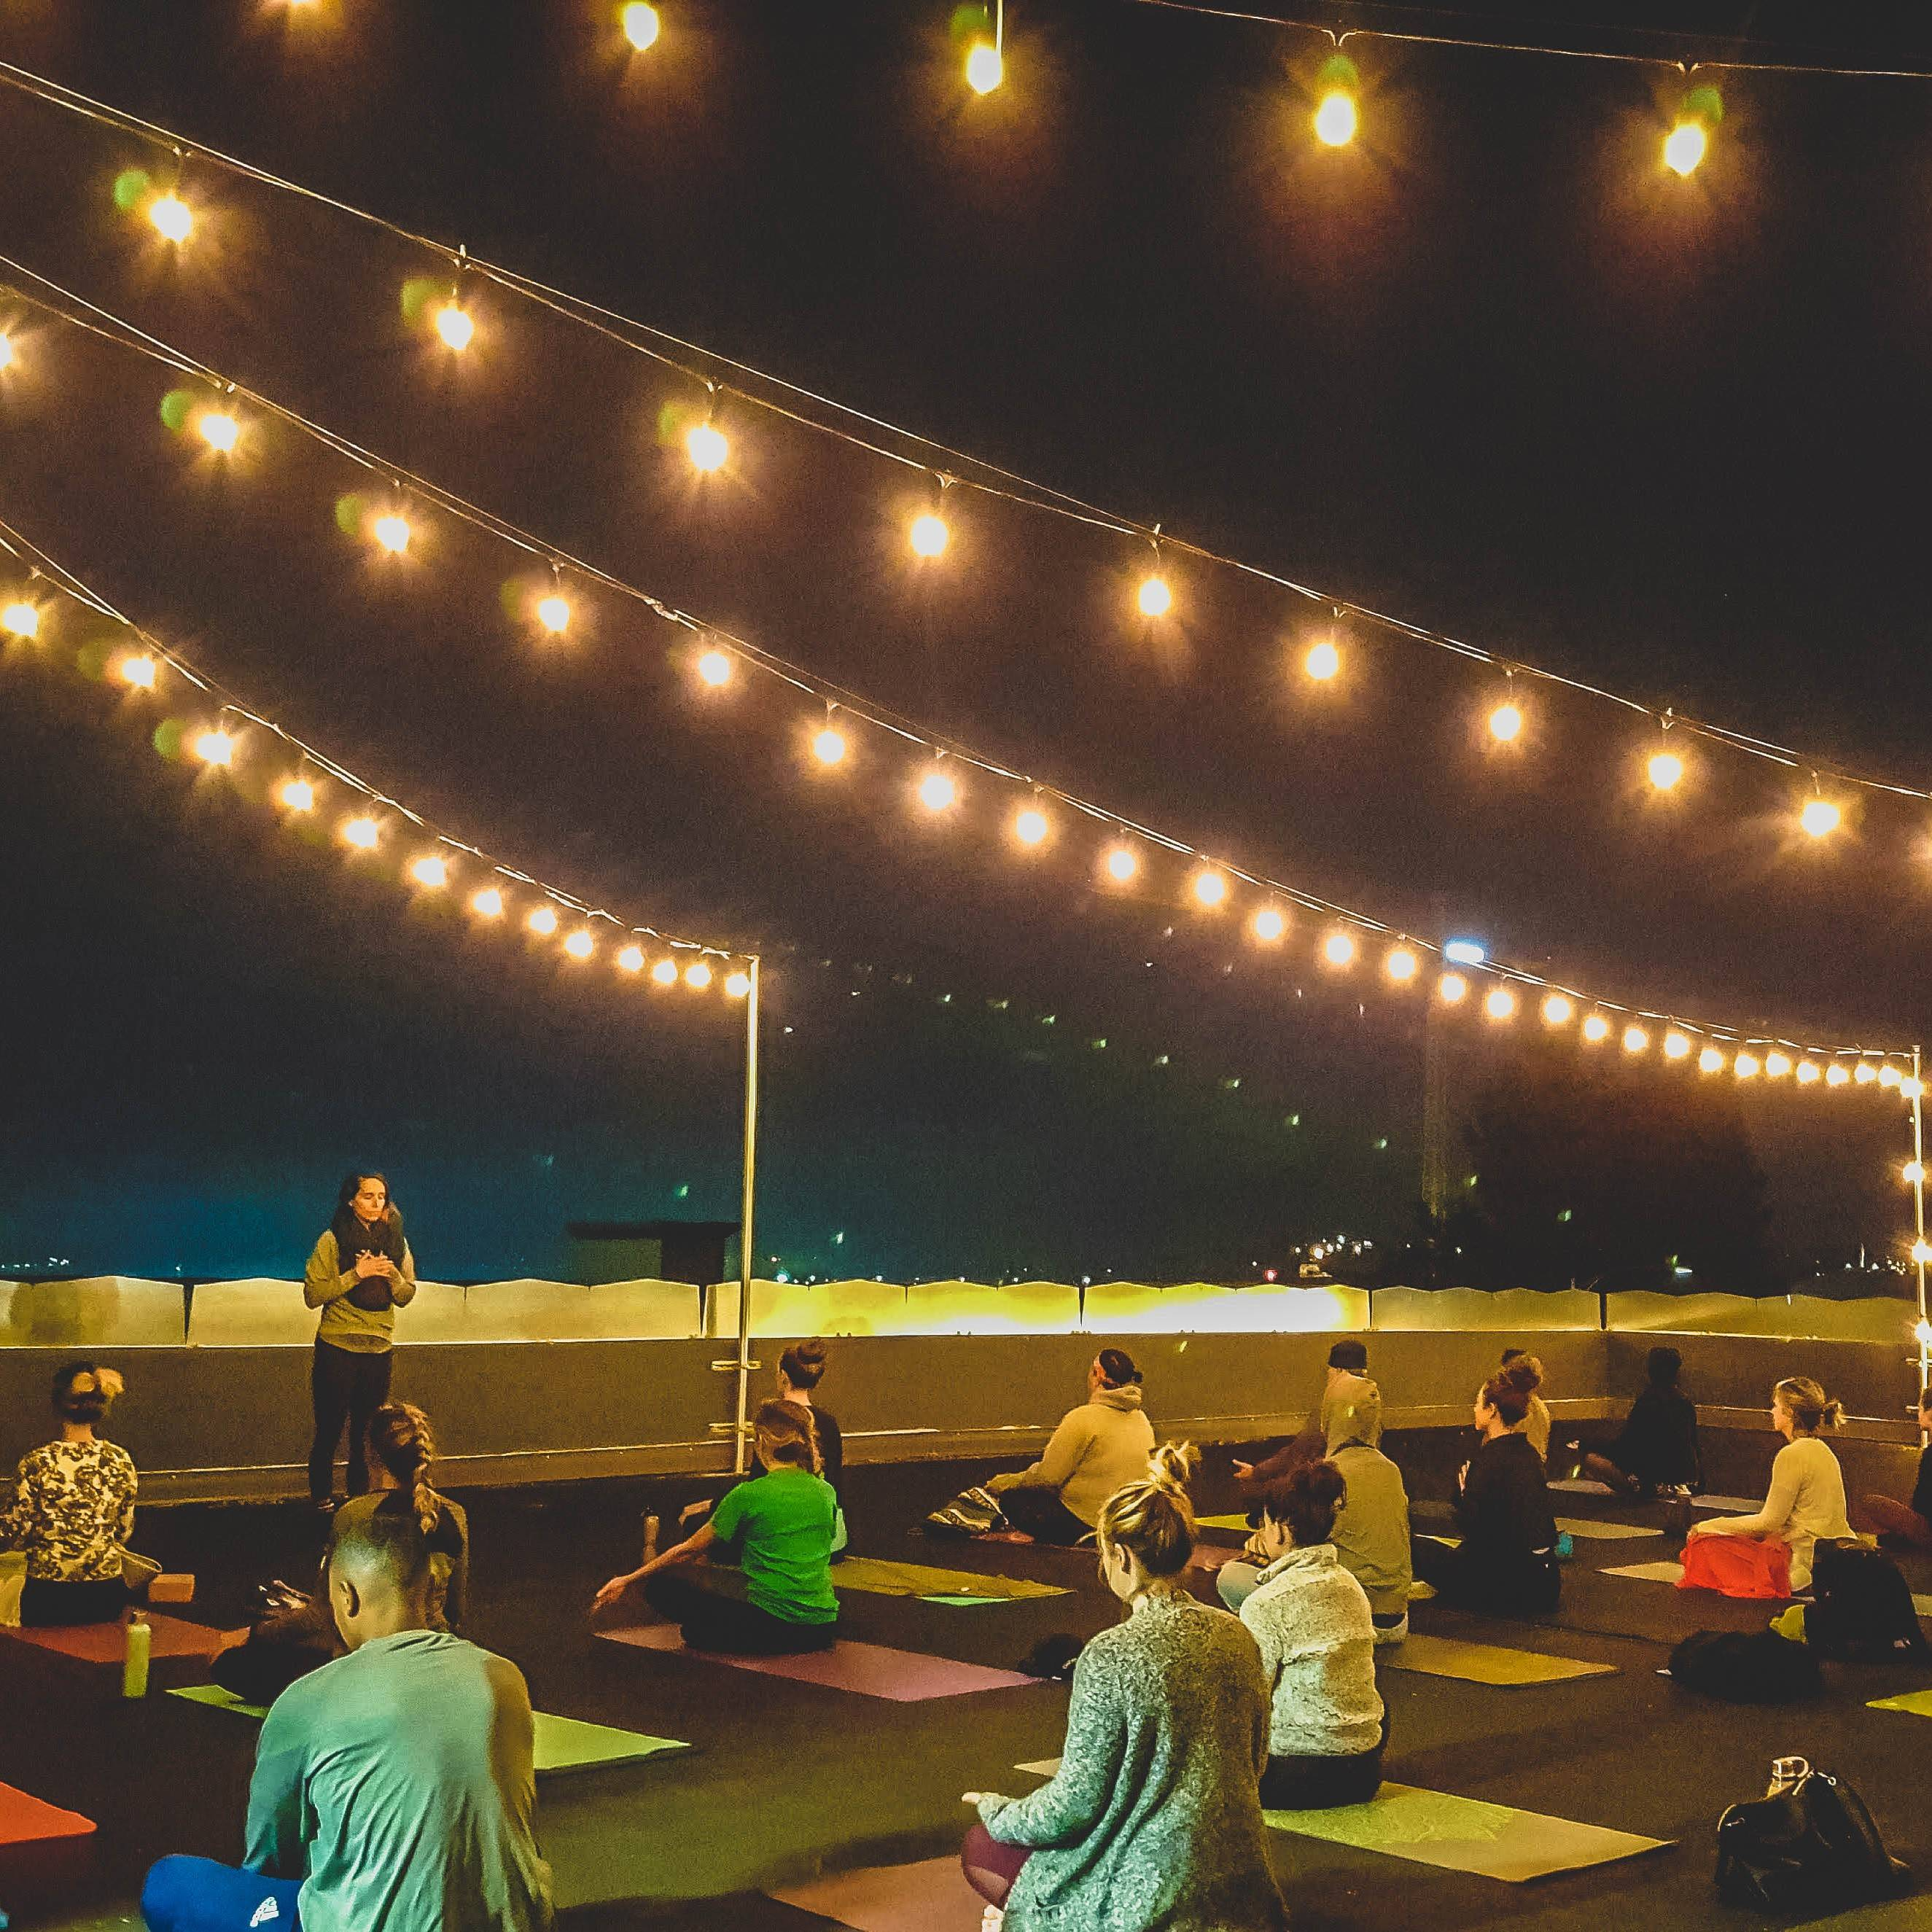 Yoga on a rooftop at night under white string lights.